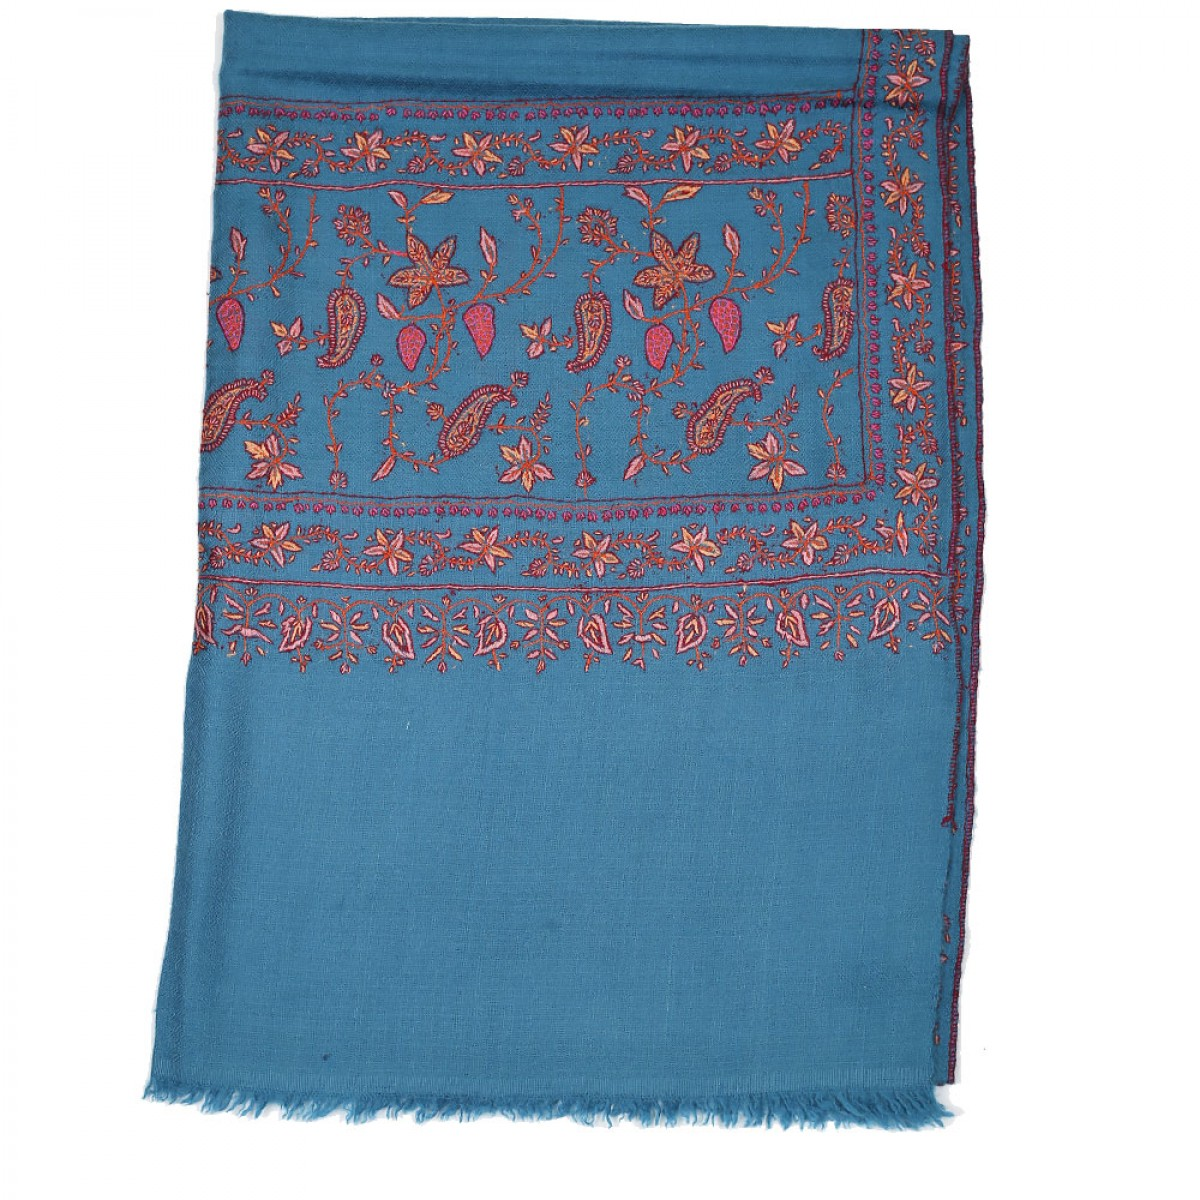 Embroidery Handloom Pashmina- Agean Blue